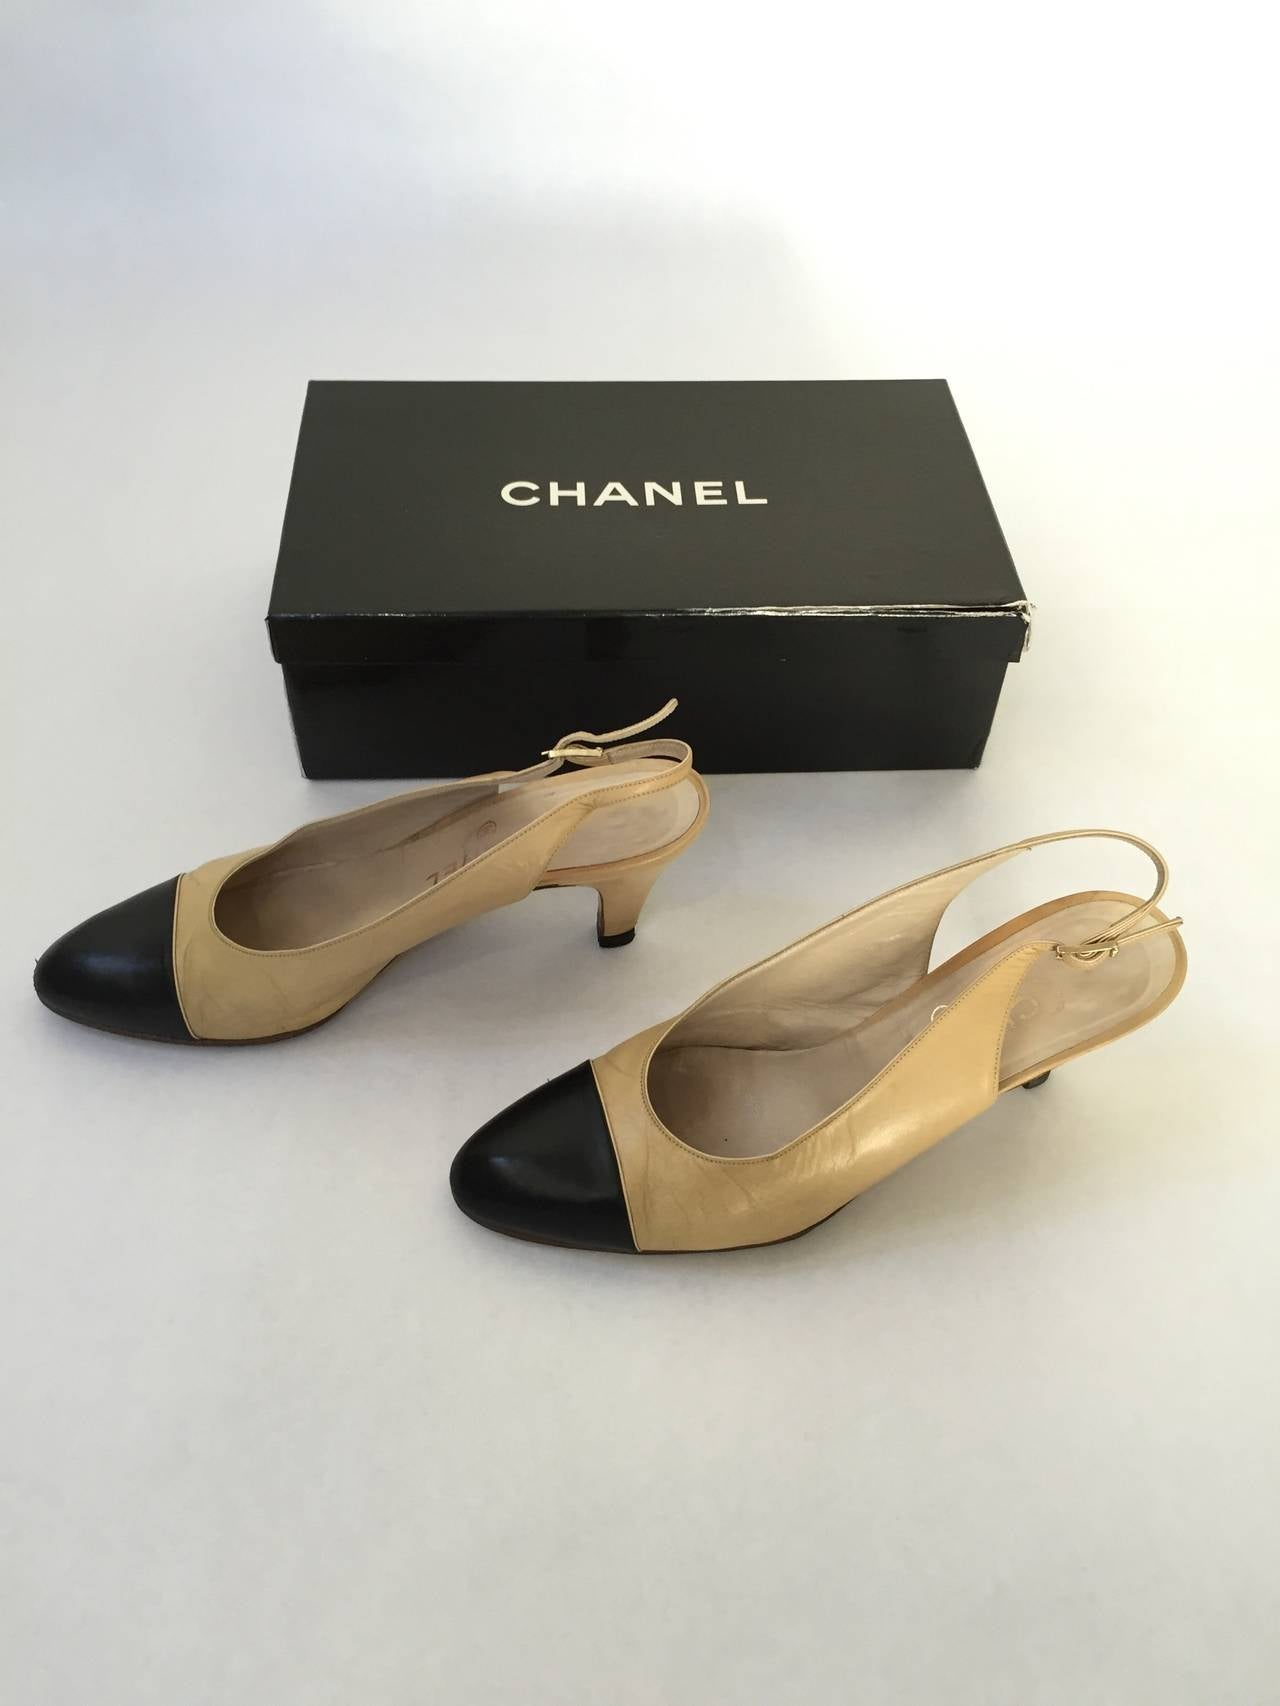 Chanel 1971 classic sling back shoes size 6.5 In Good Condition For Sale In Atlanta, GA